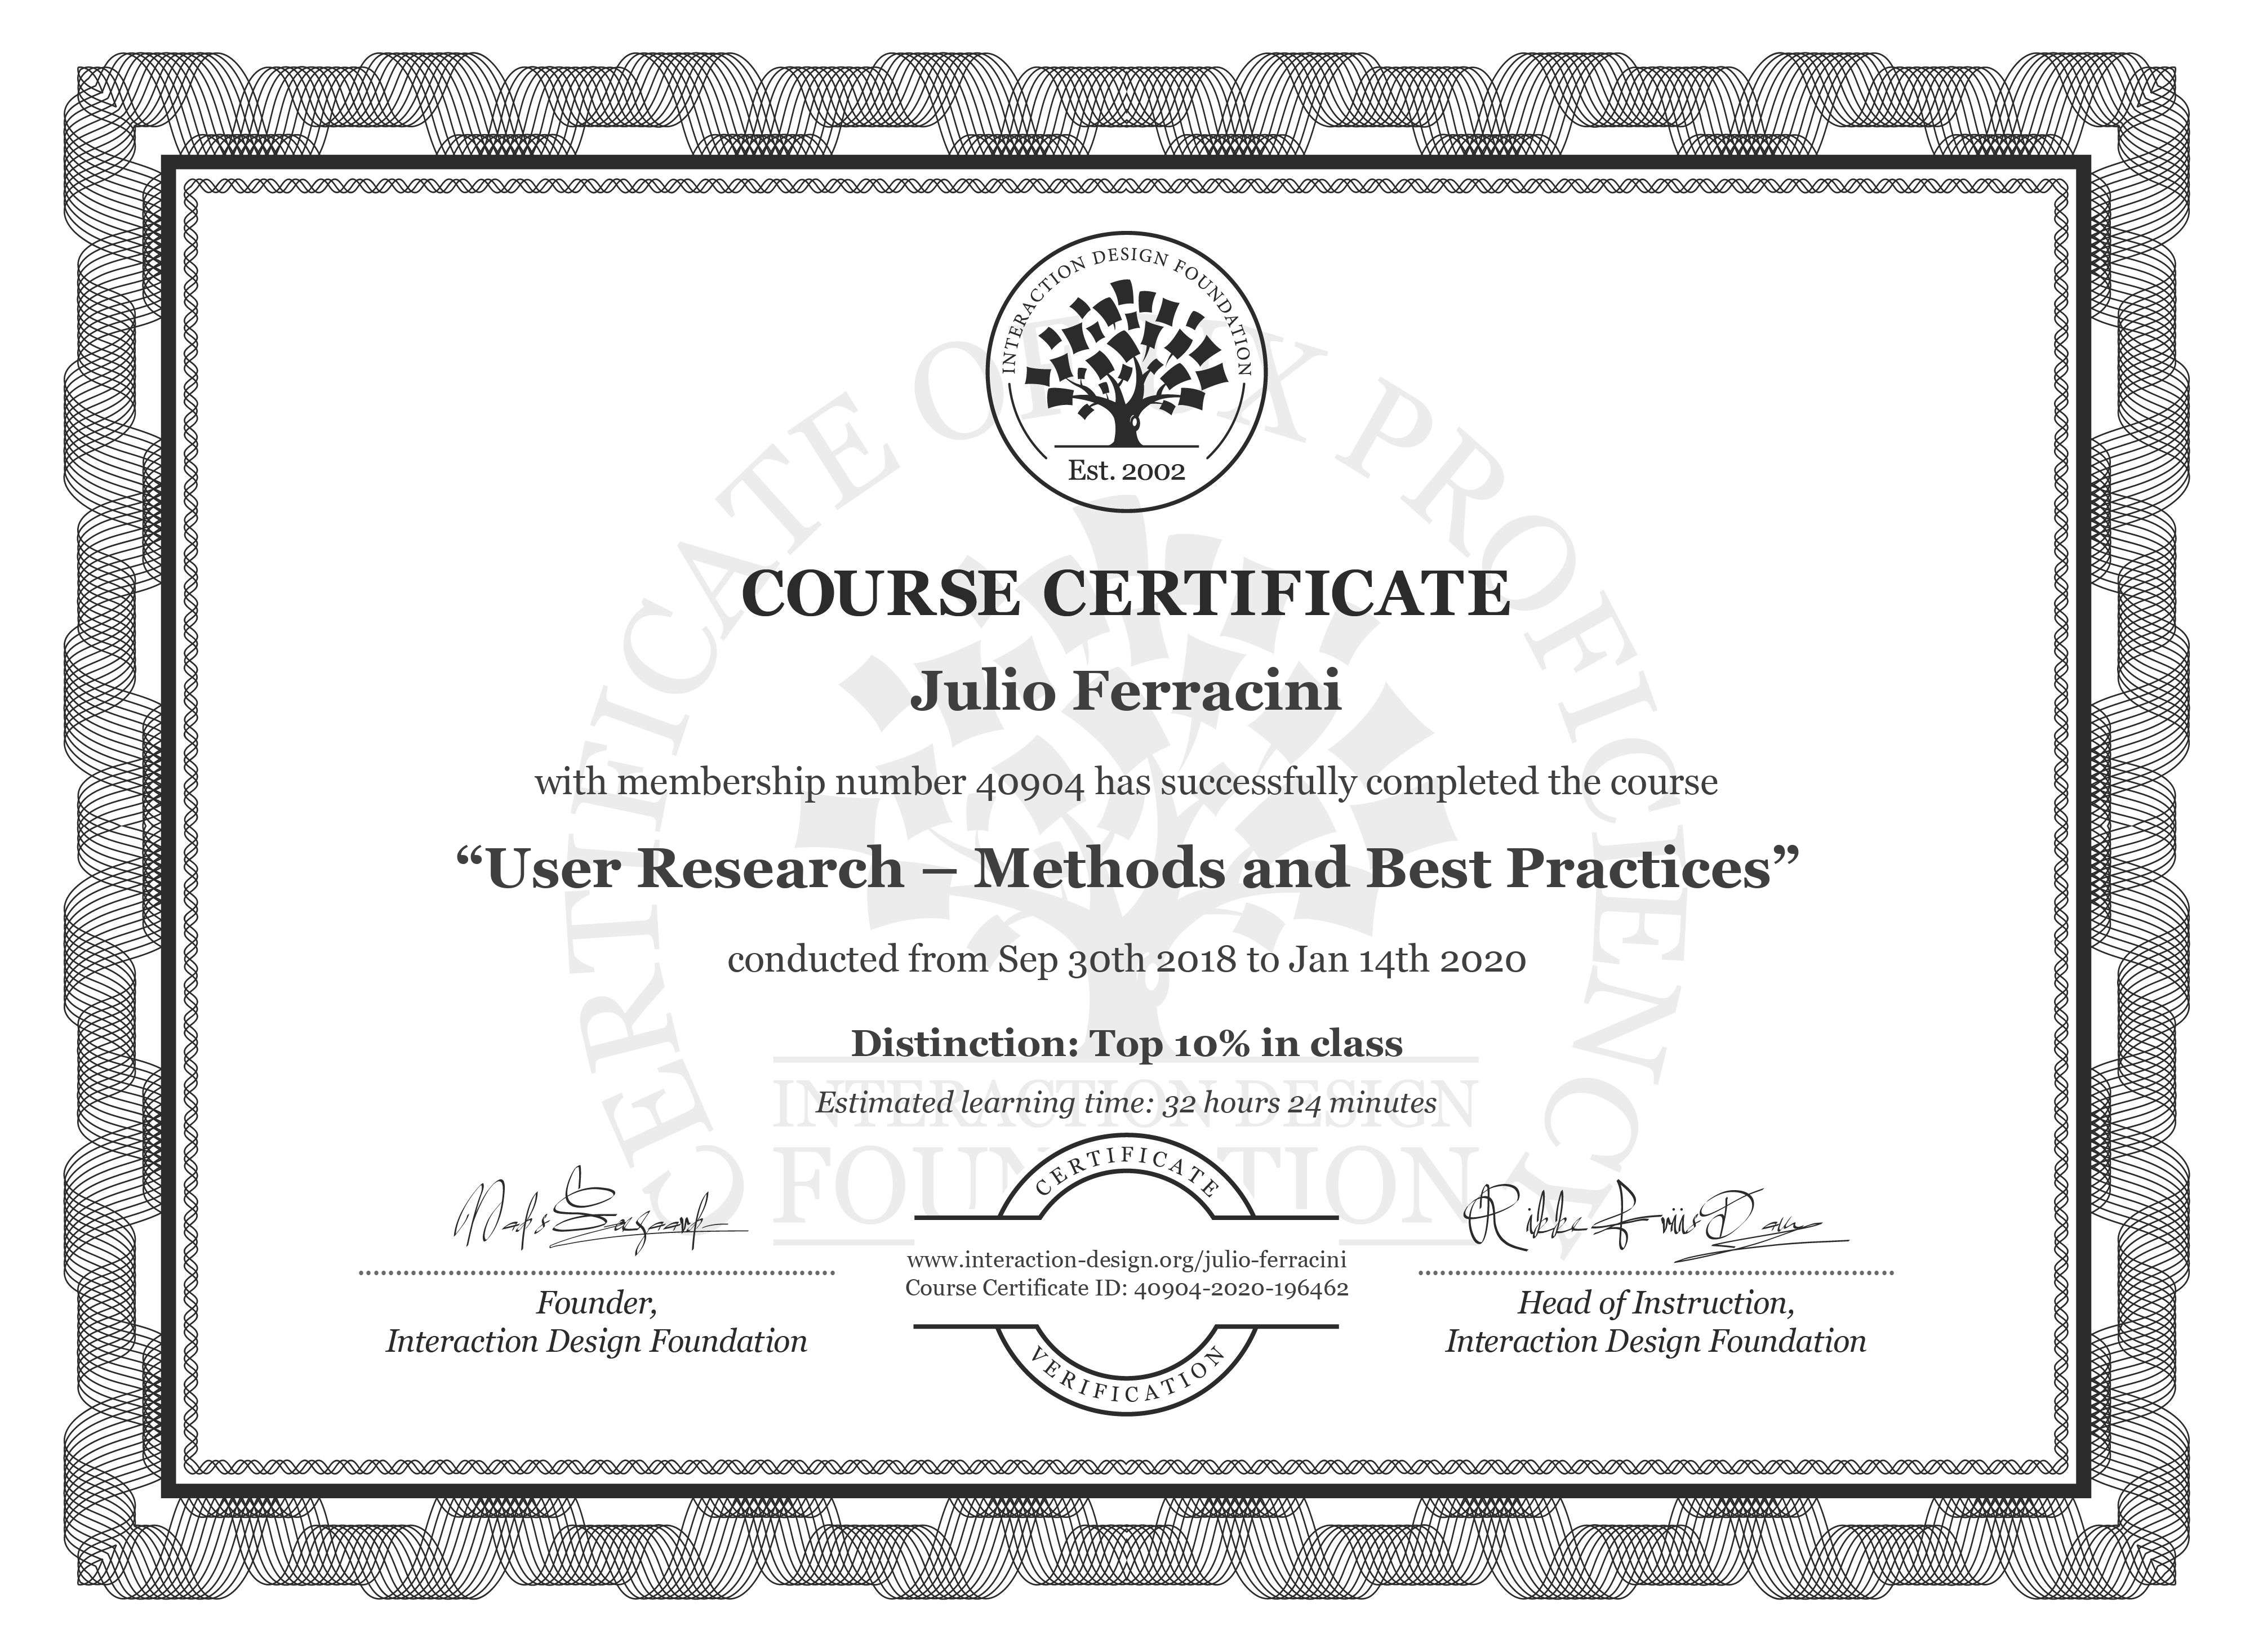 Julio Ferracini's Course Certificate: User Research – Methods and Best Practices